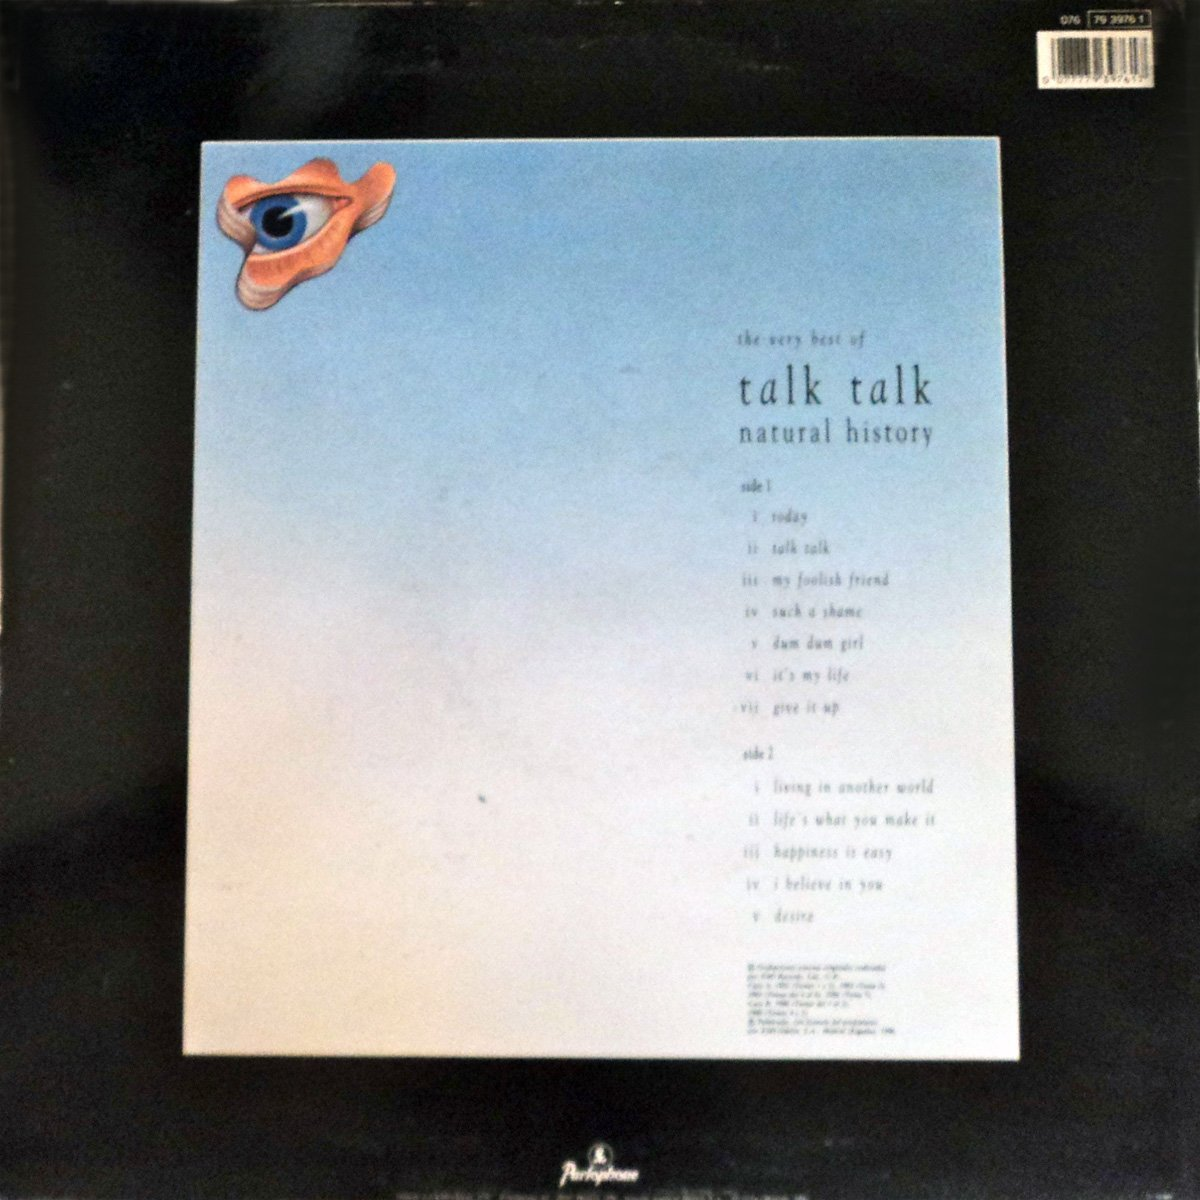 TALK TALK THE VERY BEST OF NATURAL HISTORY